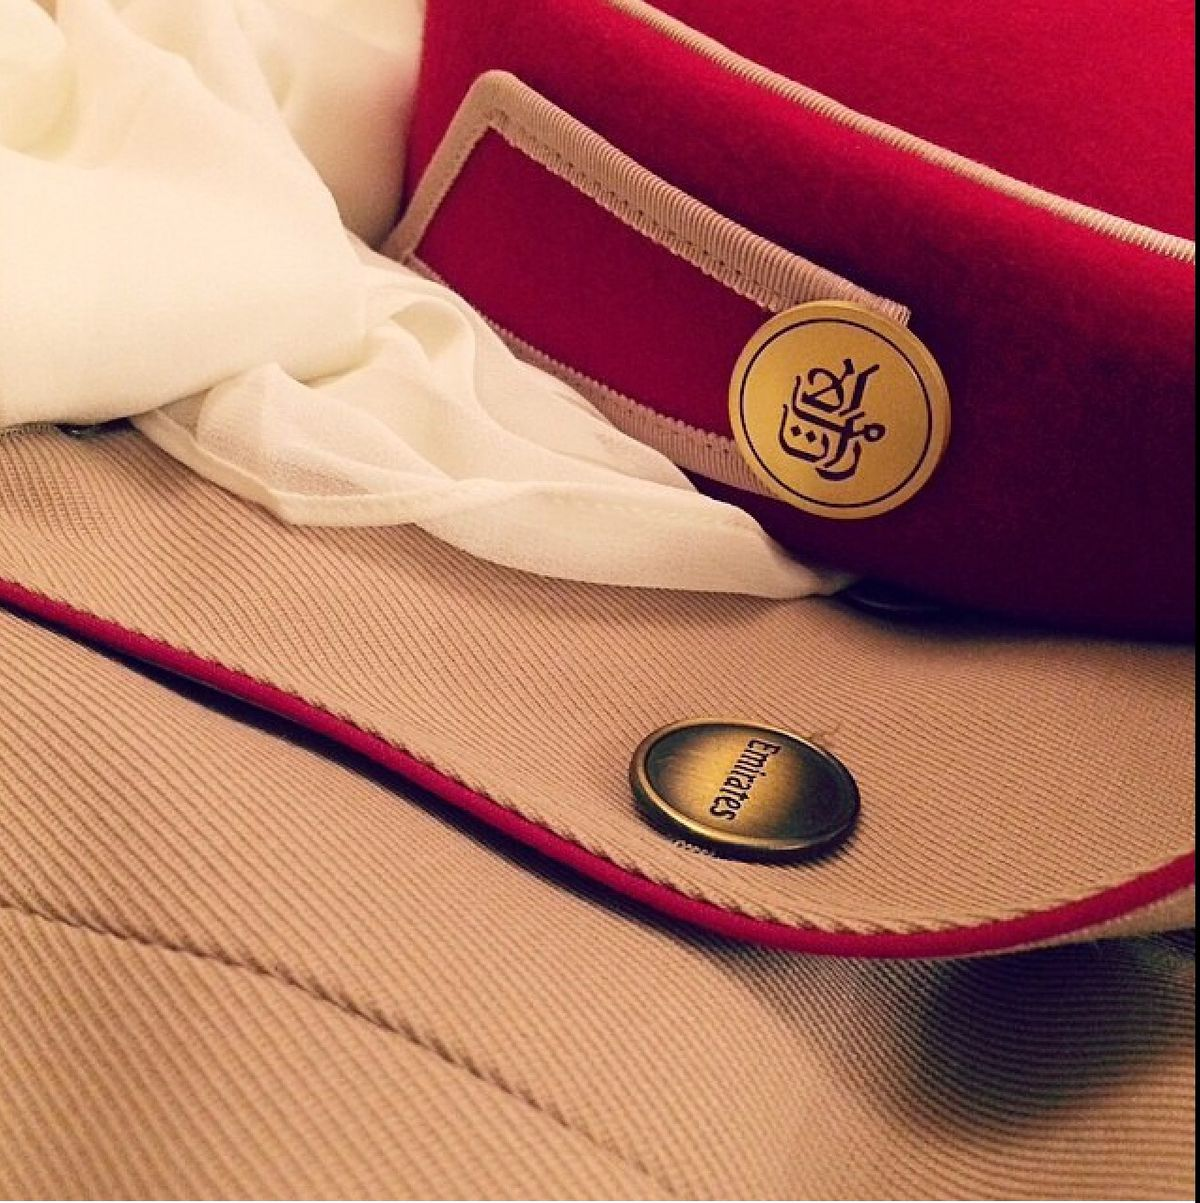 Emirates Flight Attendant Uniform